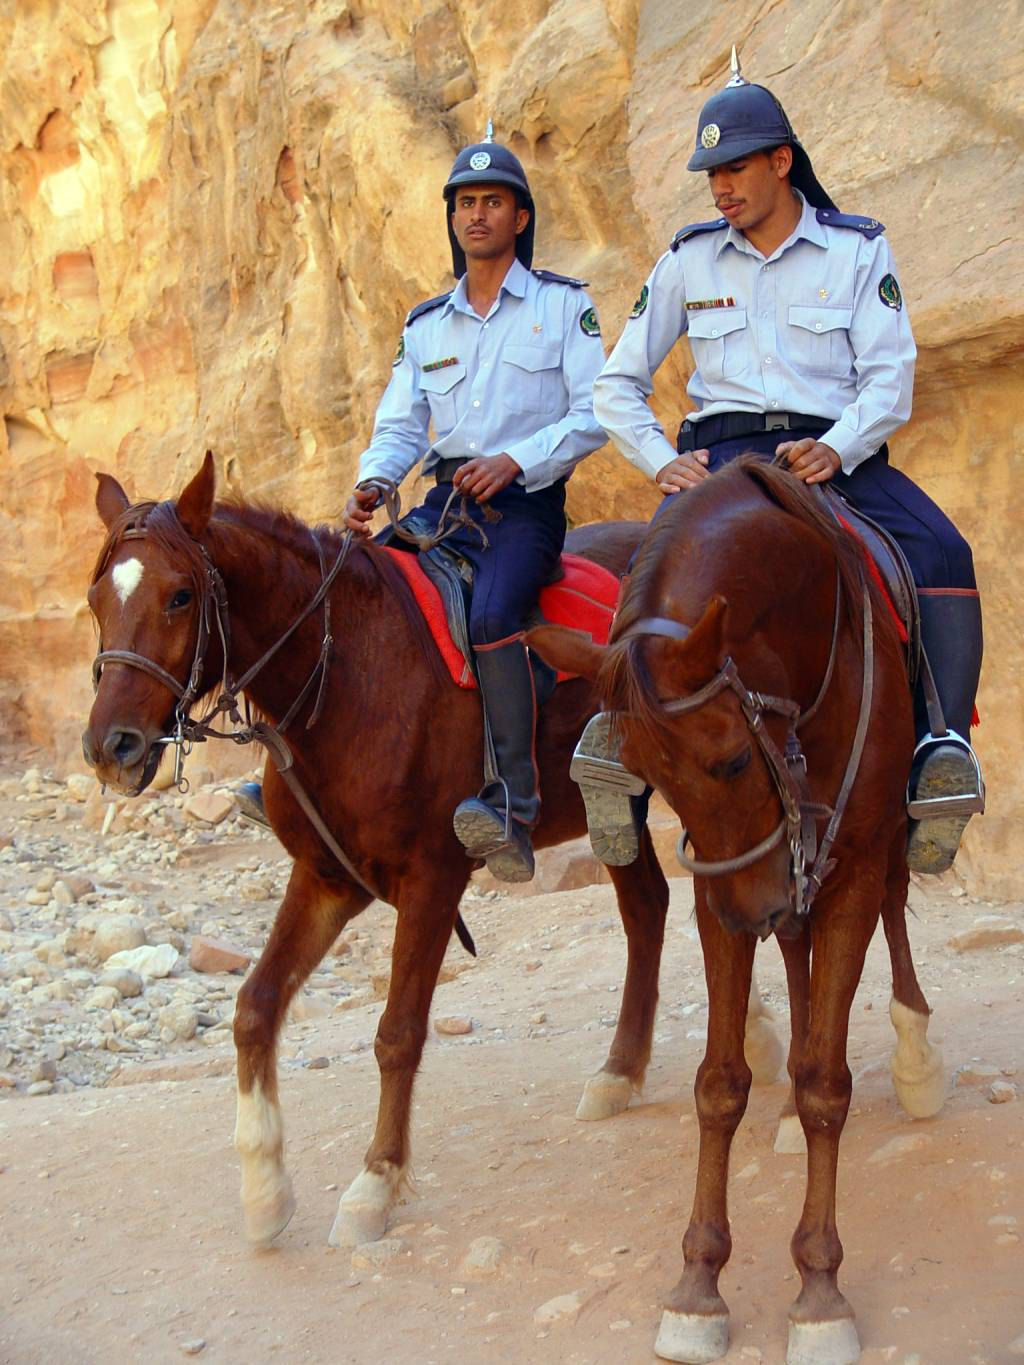 the importance of integrity and honesty in criminal justice field english mounted tourist police officers in petra